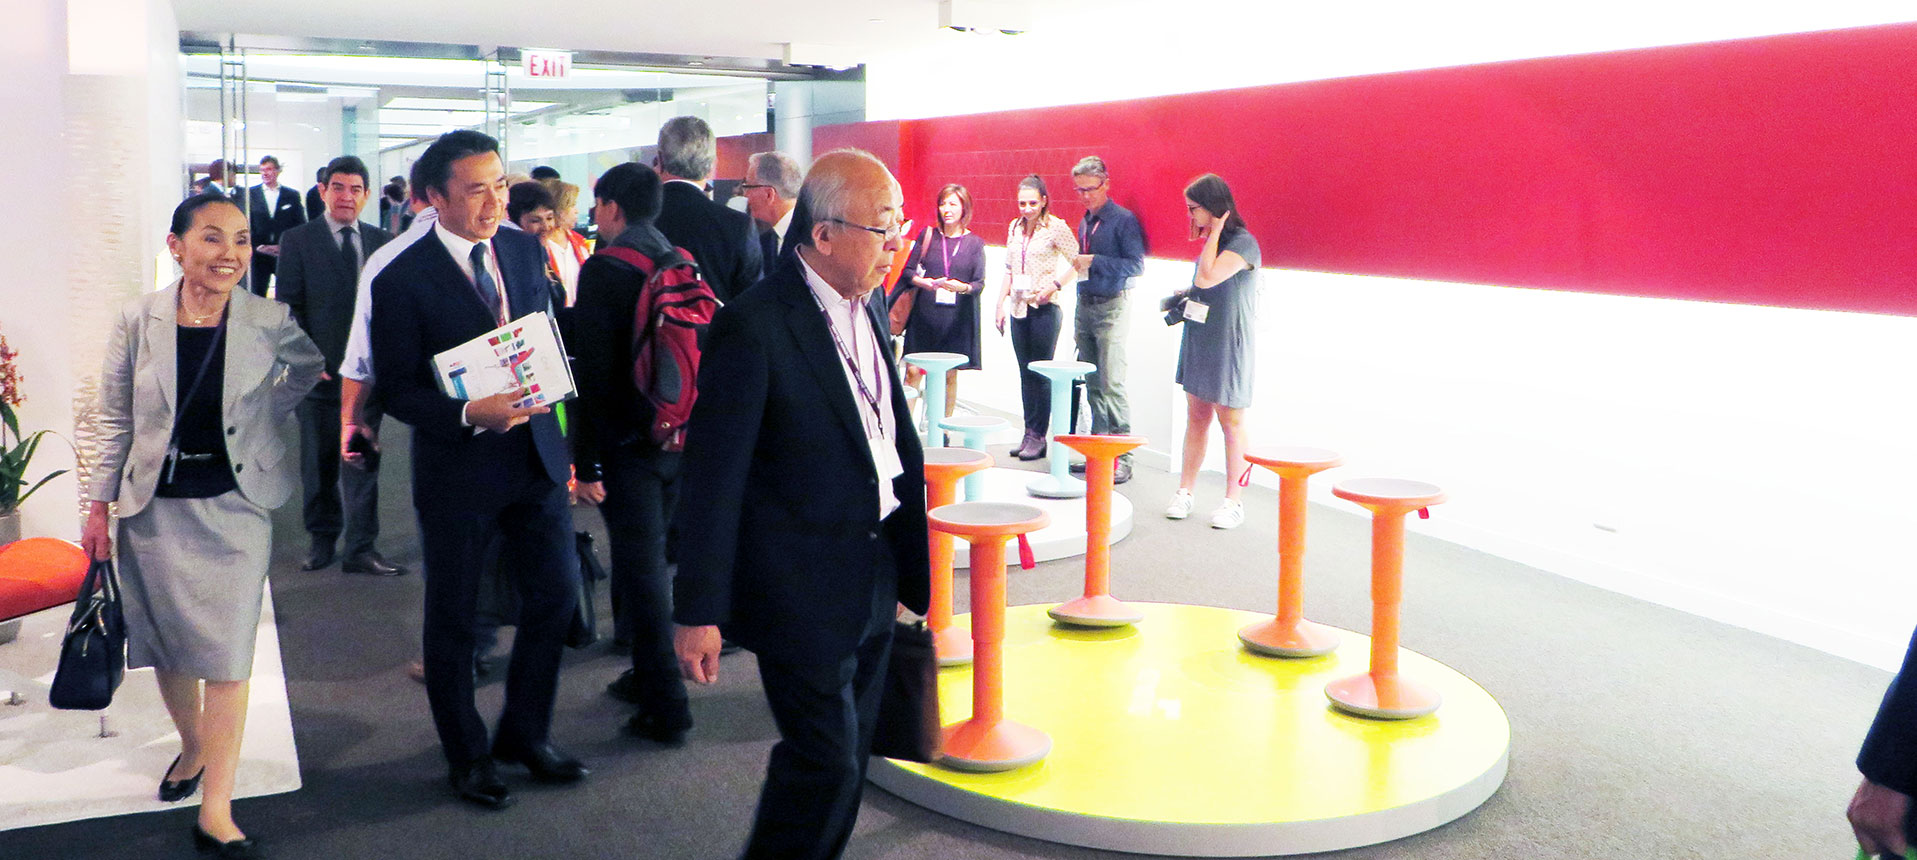 Impressions from NeoCon